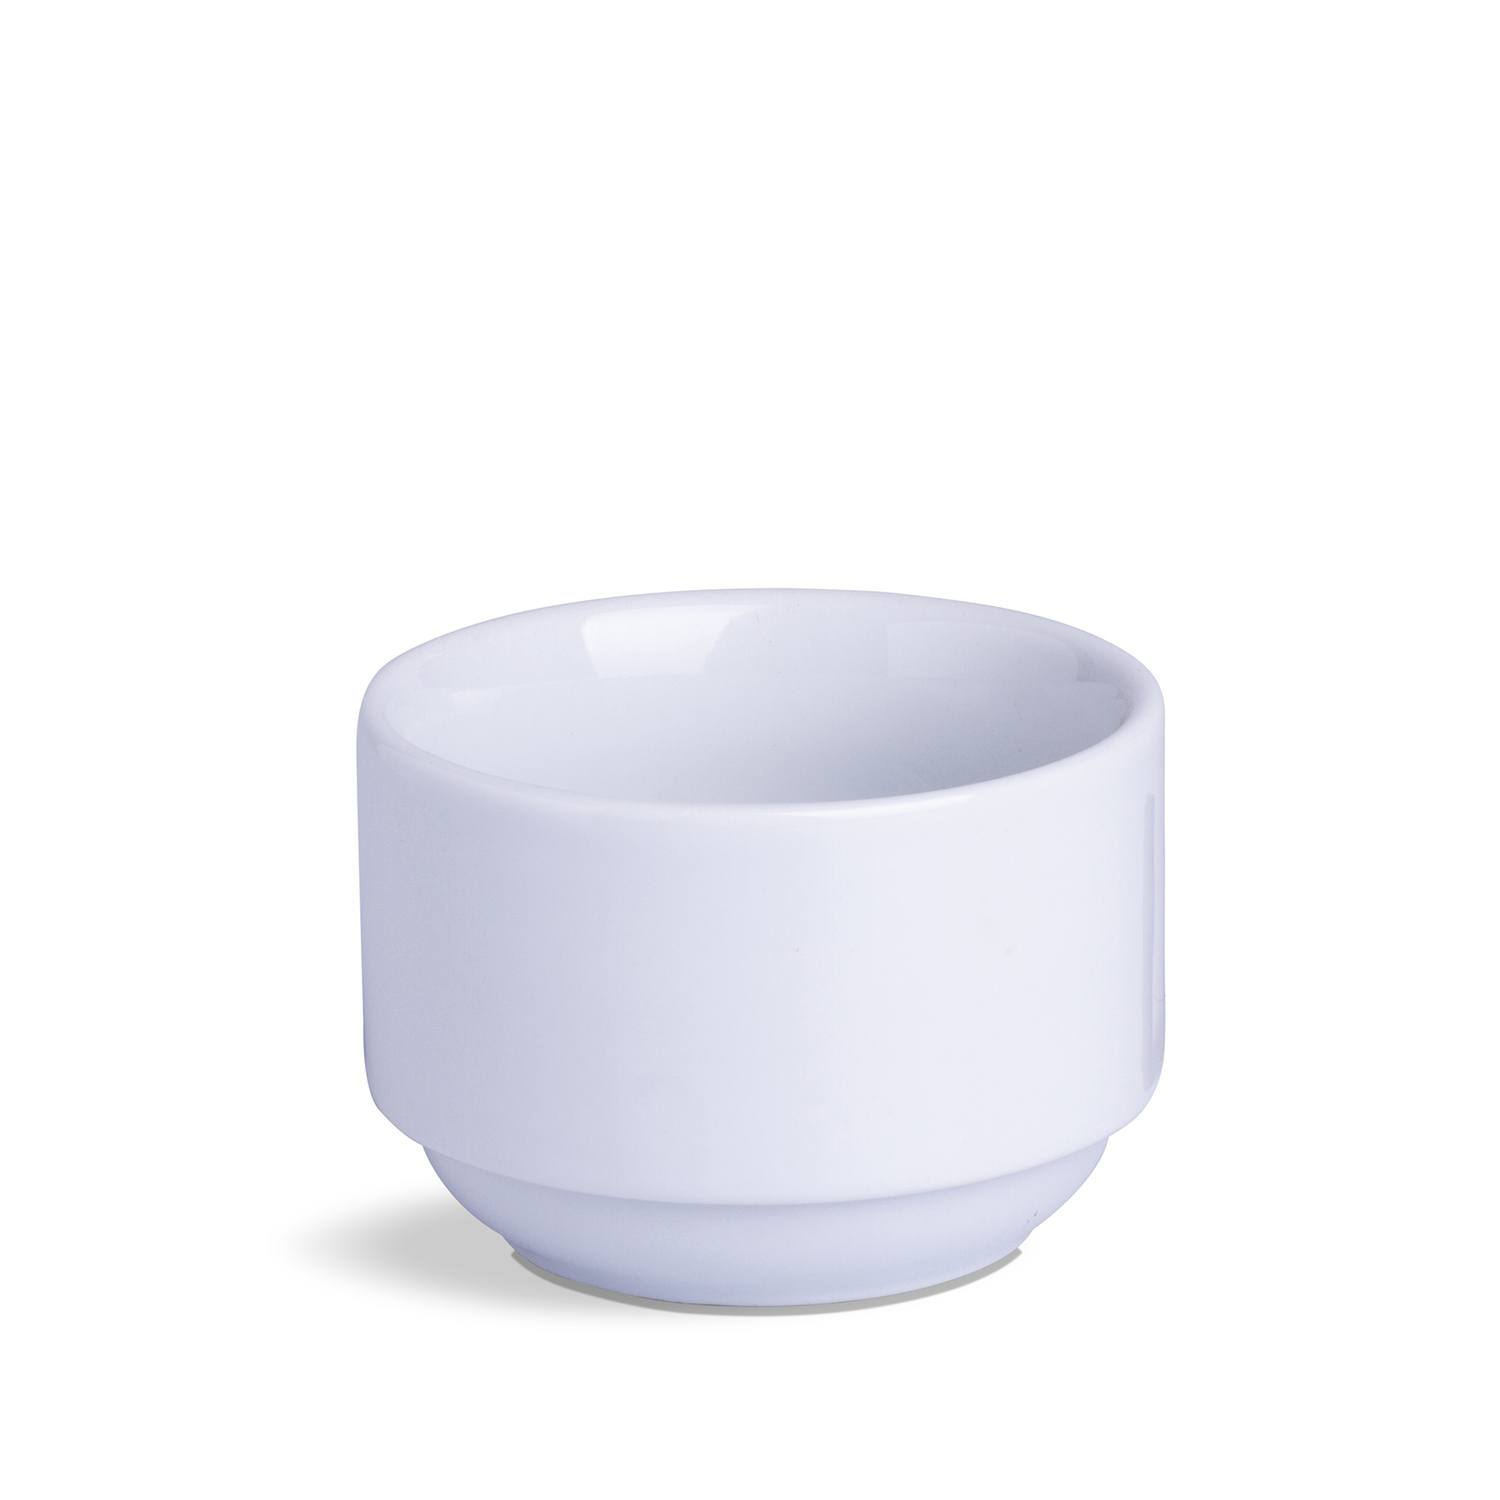 Bowl Cilíndrico Branco Porcelana 250 mL 10 x 10 x 7 cm